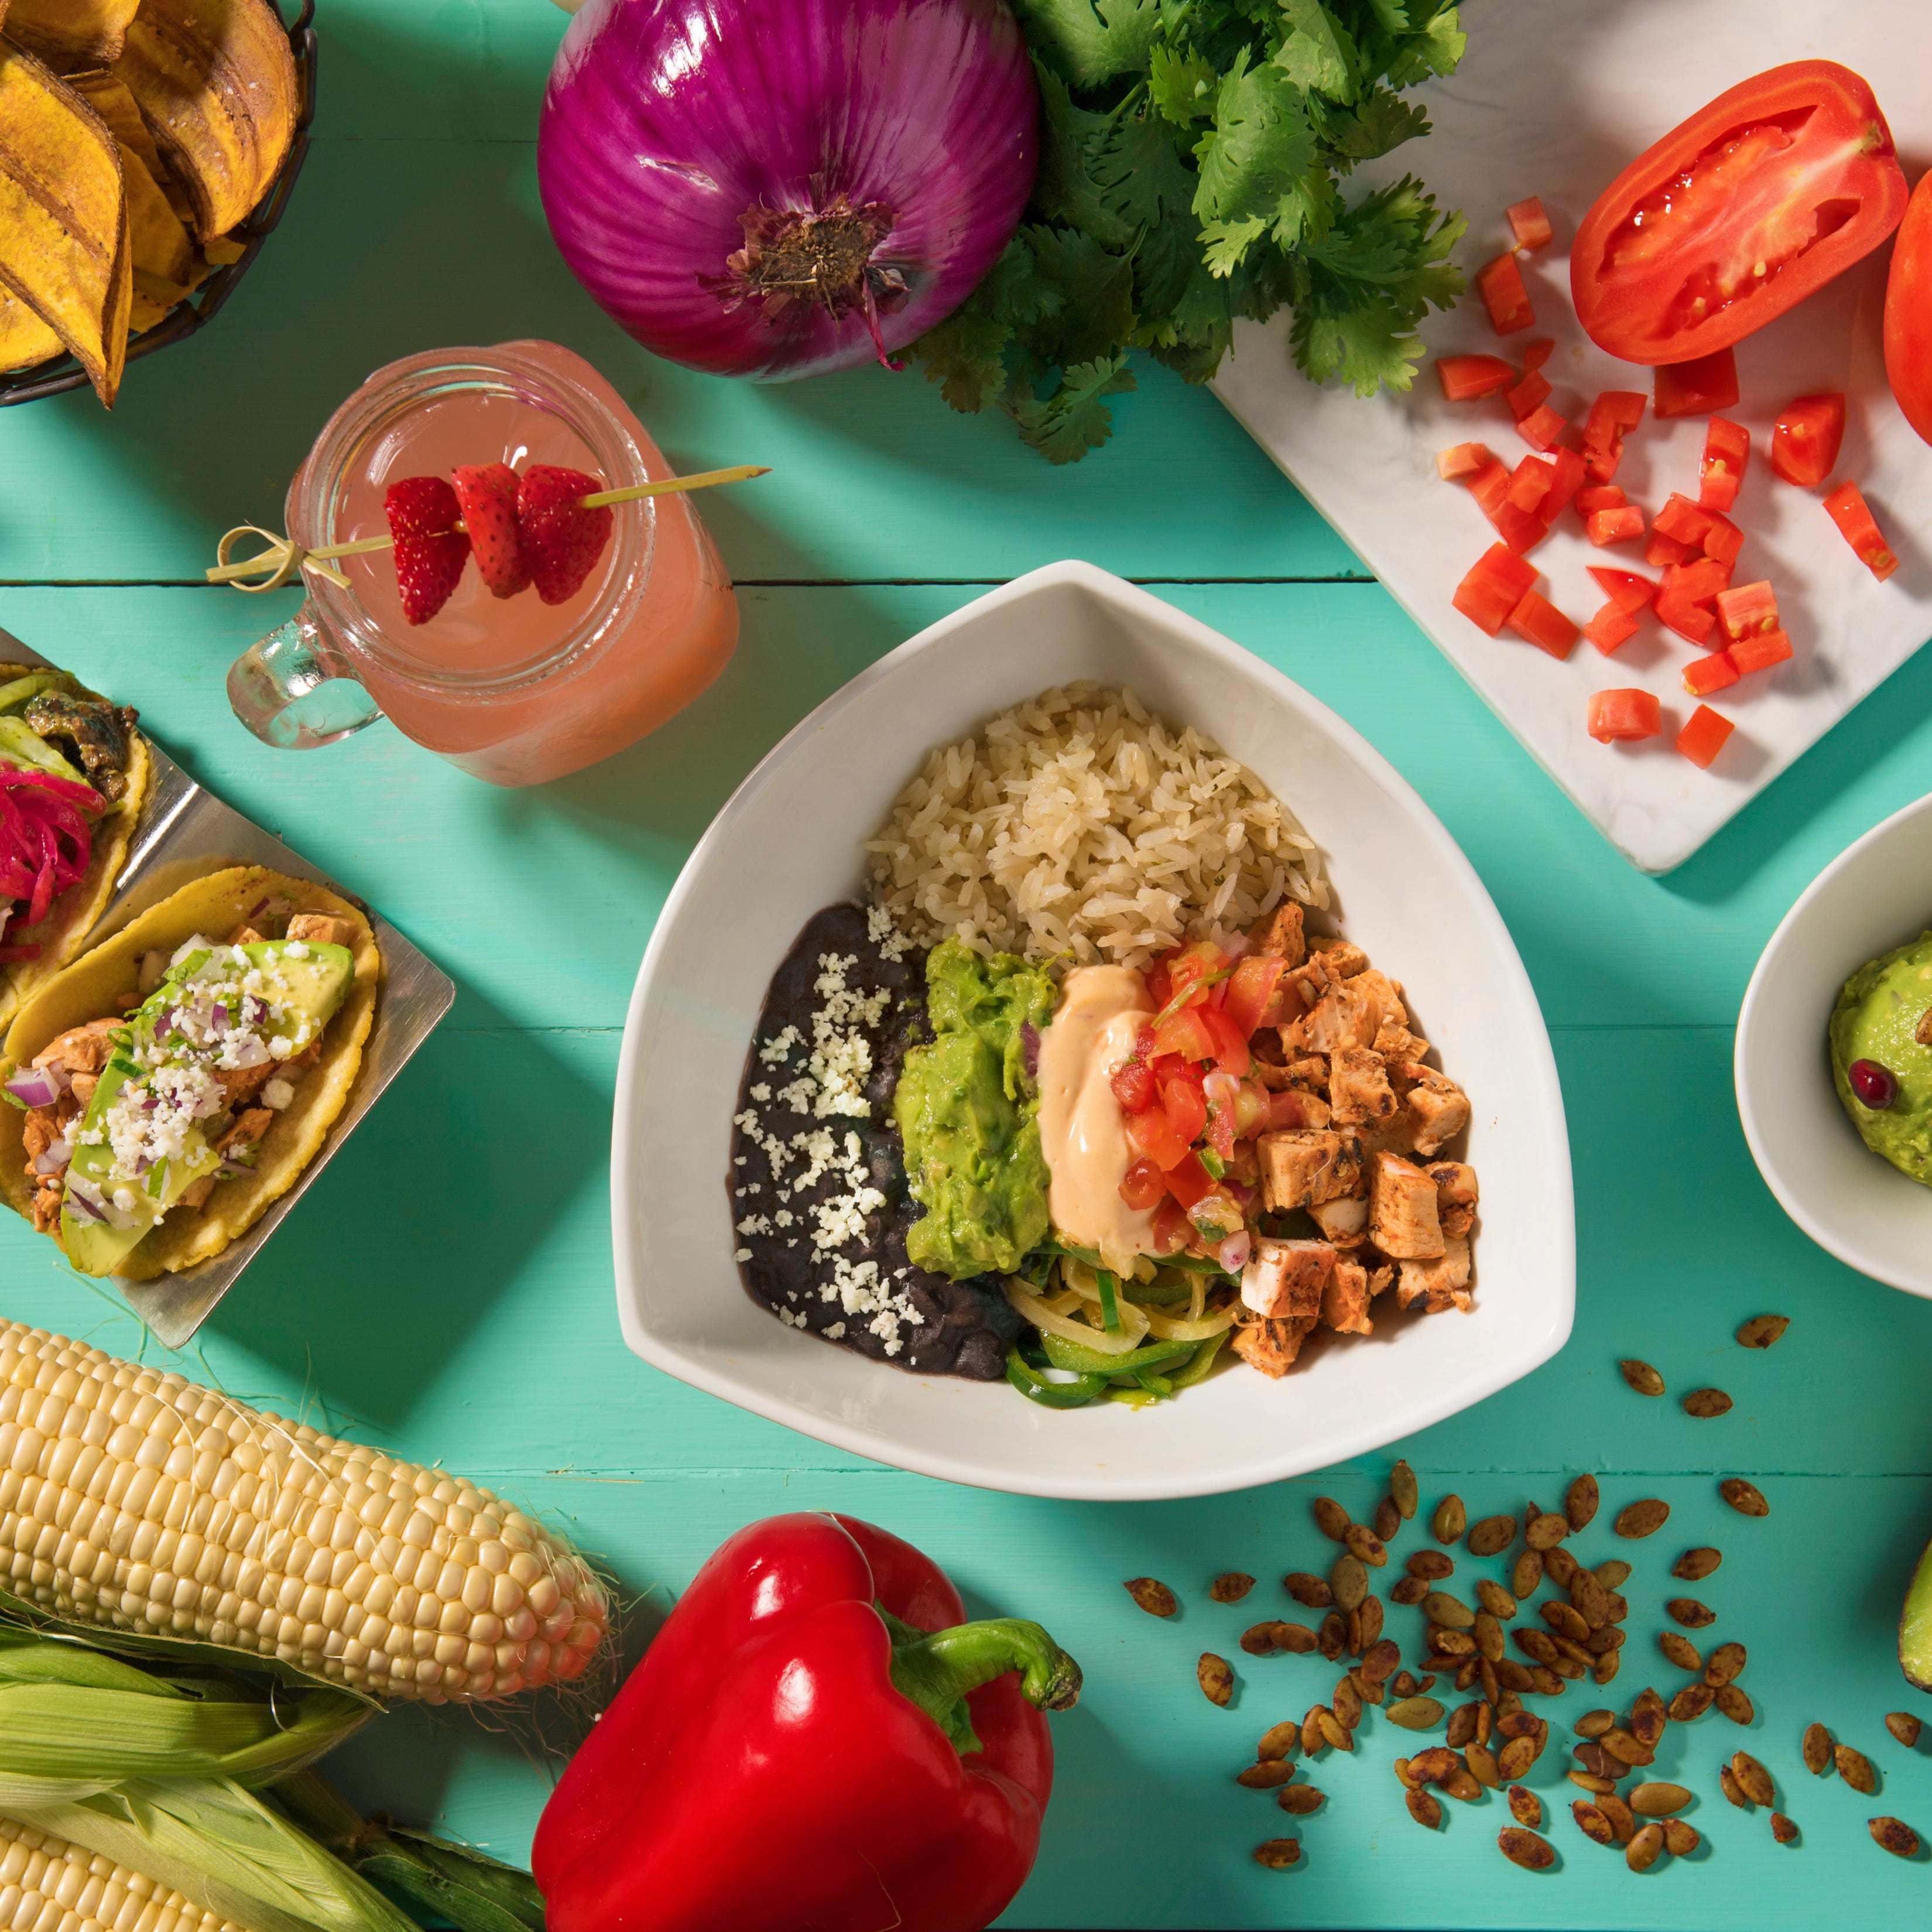 Tocaya Organica opens in Phoenix: 'First foray' out of state for healthy Mexican food chain